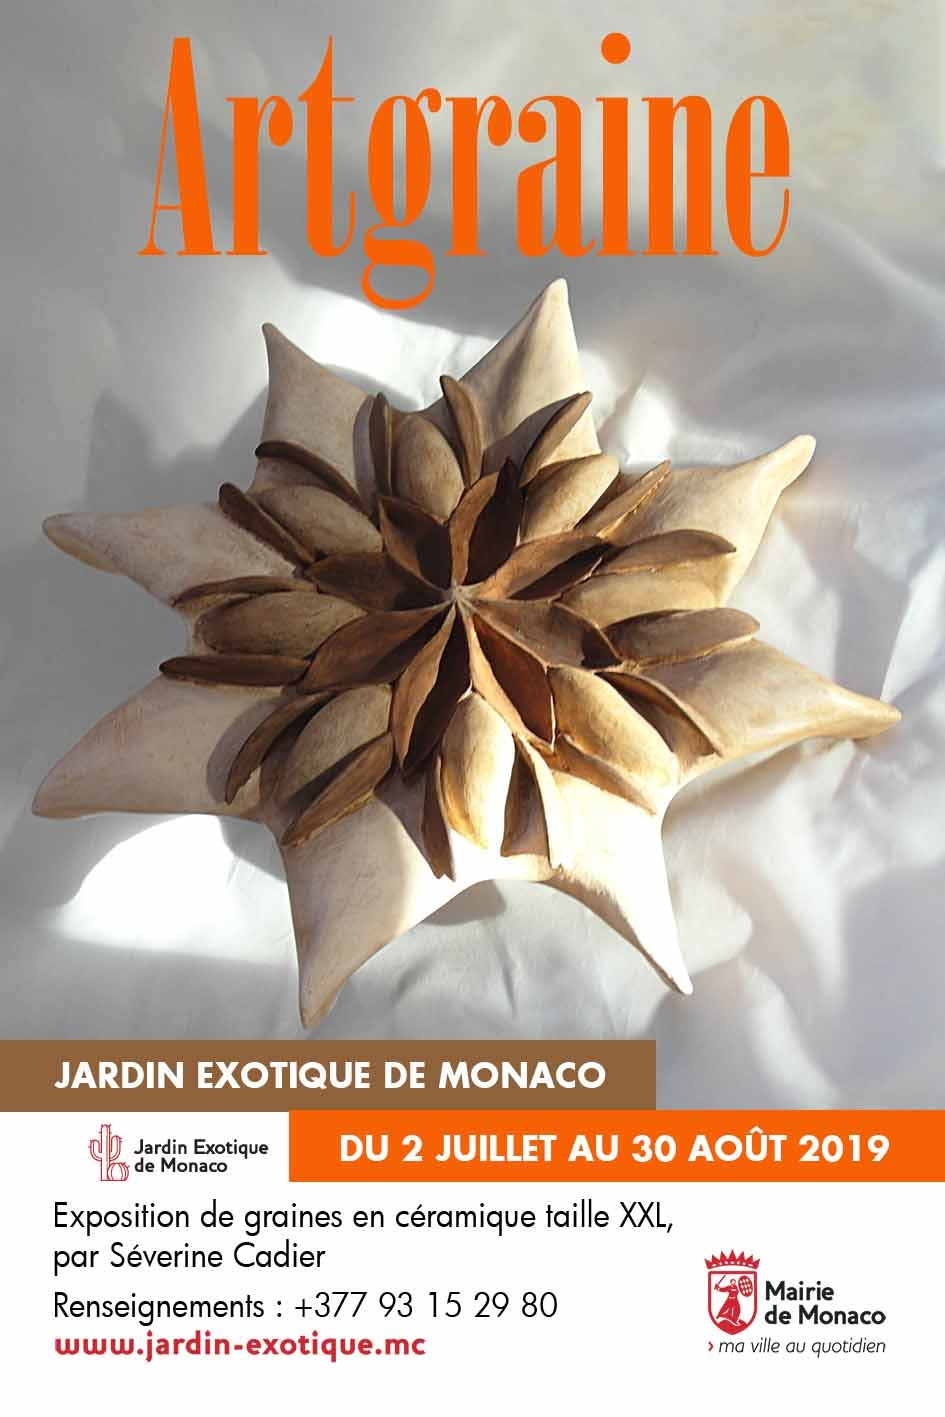 Expo ARTGRAINE LIGHT